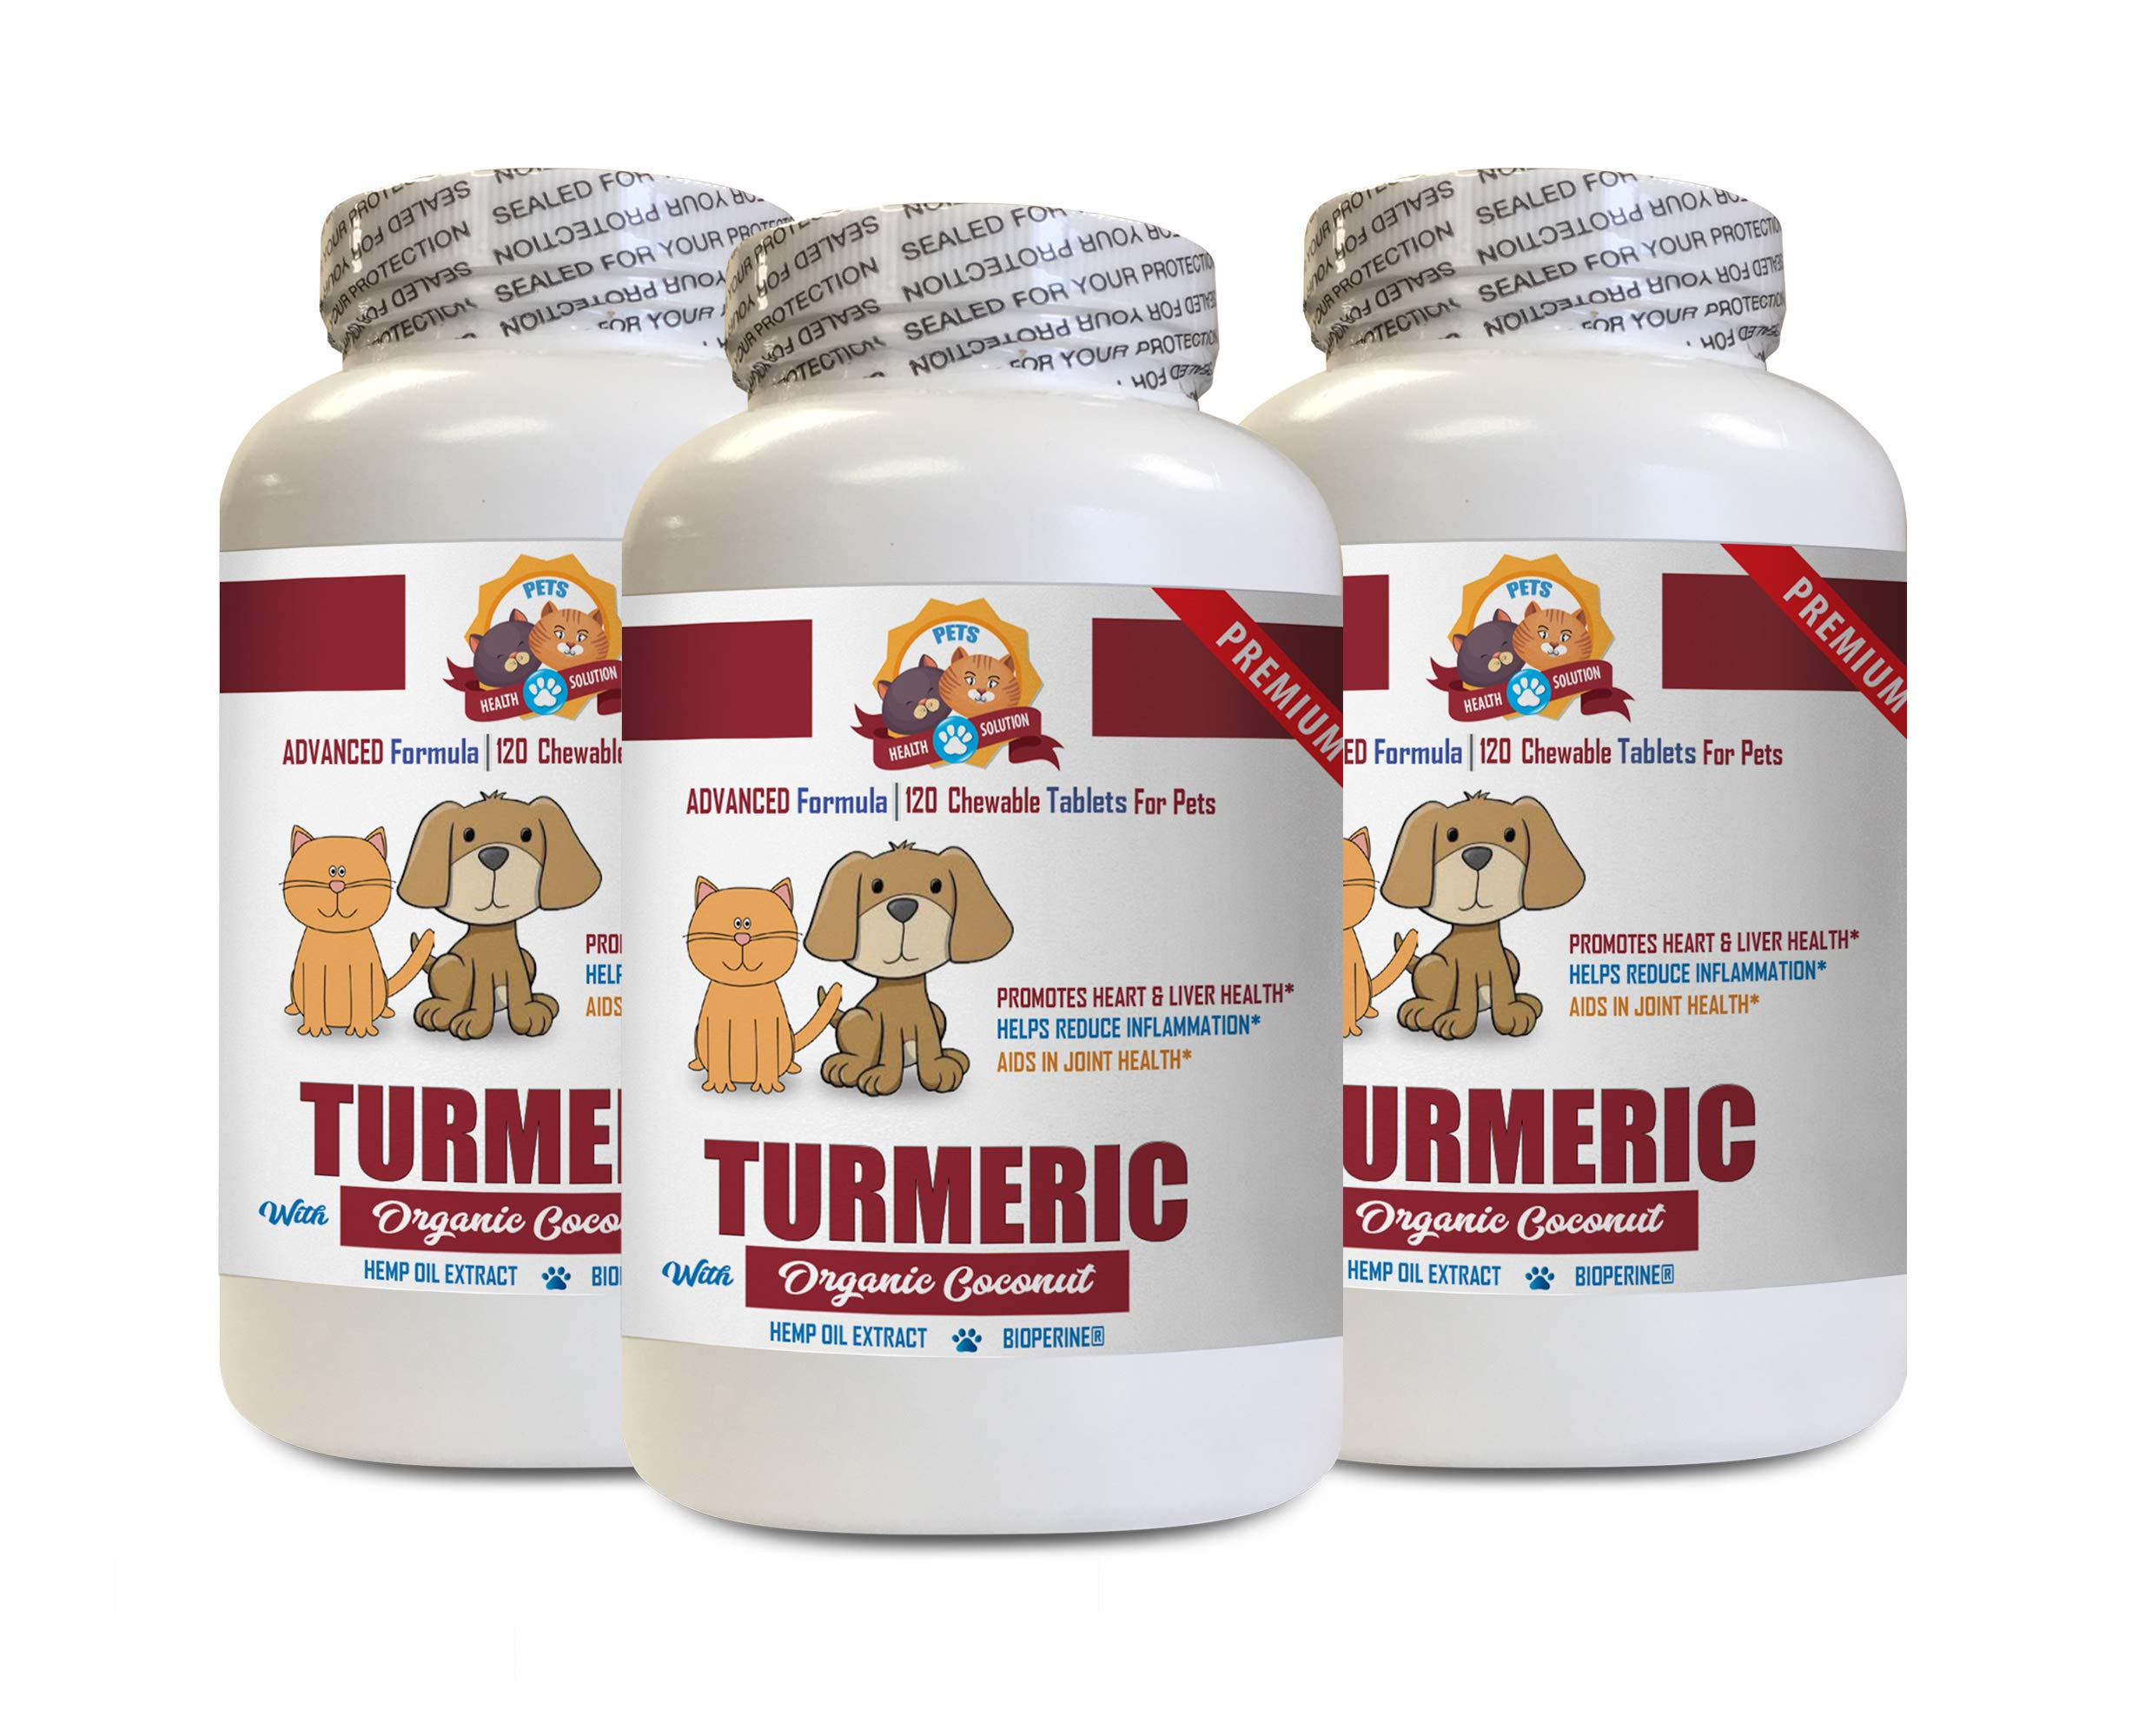 cat Skin Health - Pets Turmeric with Organic Coconut Oil - Dogs and Cats - Added Hemp Oil Extract - Powerful - Turmeric Supplements for Cats - 3 Bottles (360 Treats) by PETS HEALTH SOLUTION